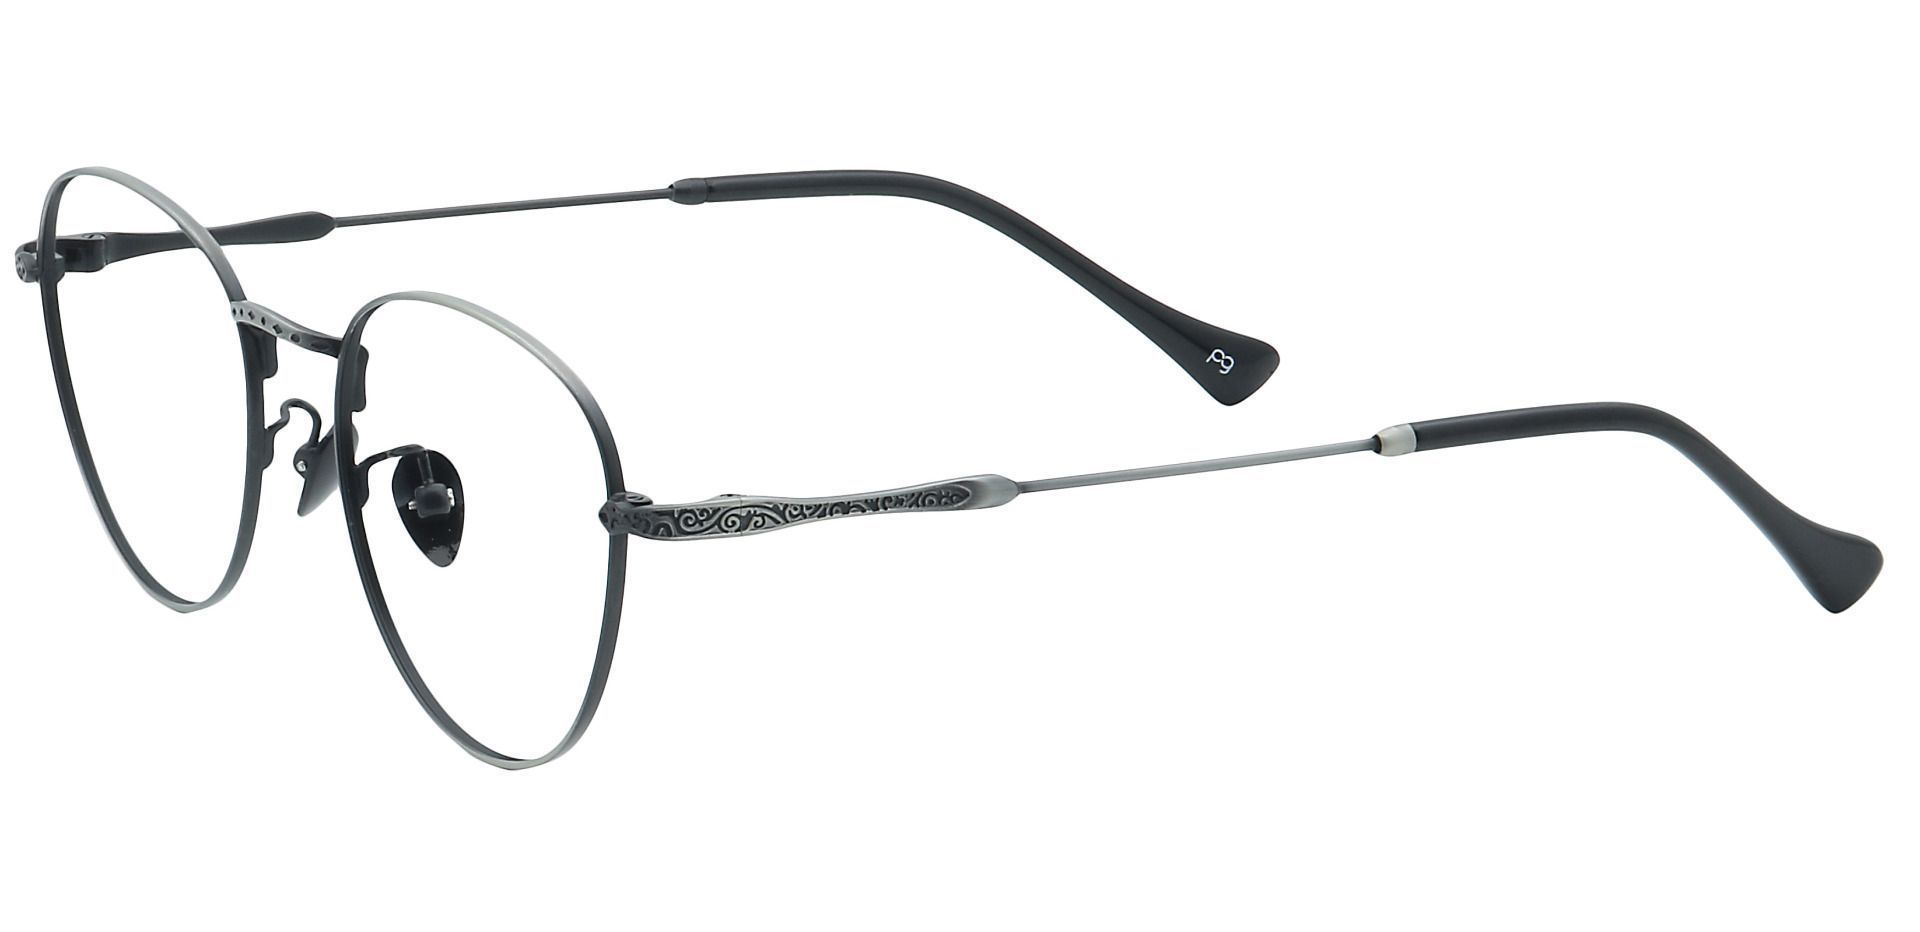 Shawn Oval Lined Bifocal Glasses - Gray